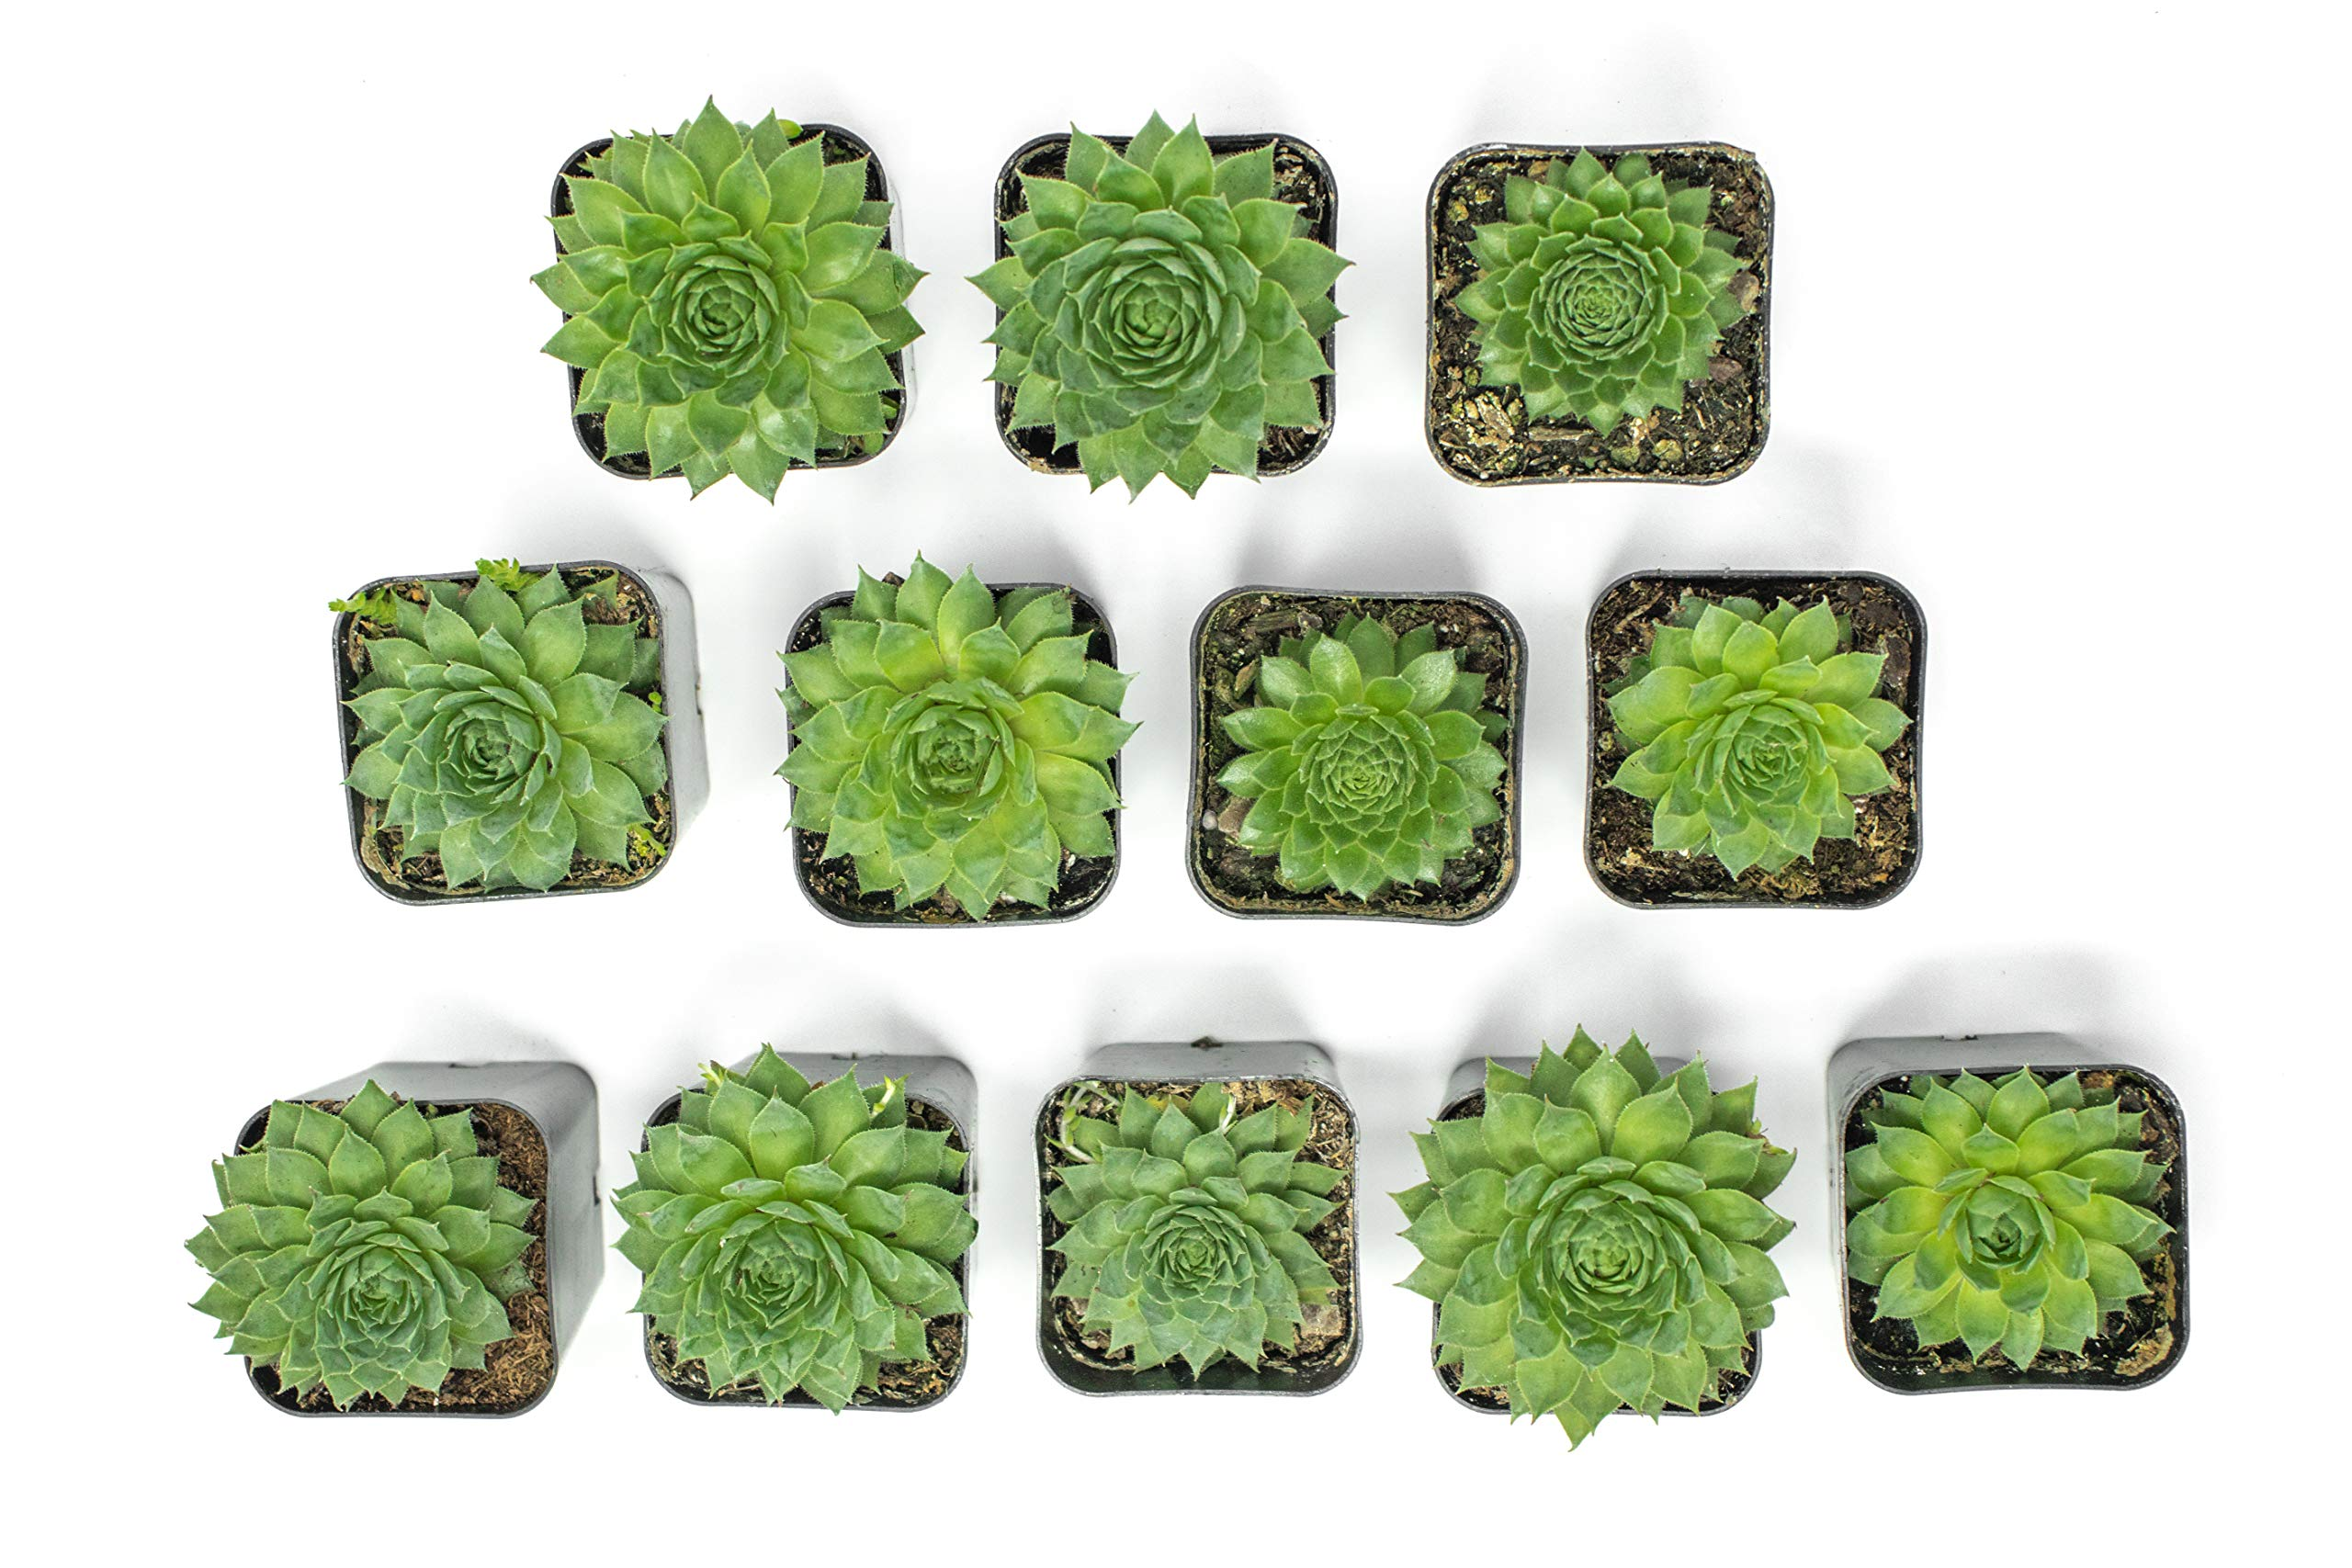 Fractal Succulents(5 Pack) Live Sempervivum Houseleek SucculentRooted in Pots | Flowering Plant Leaves /Geometric Rosettes by Plants for Pets by Plants for Pets (Image #10)